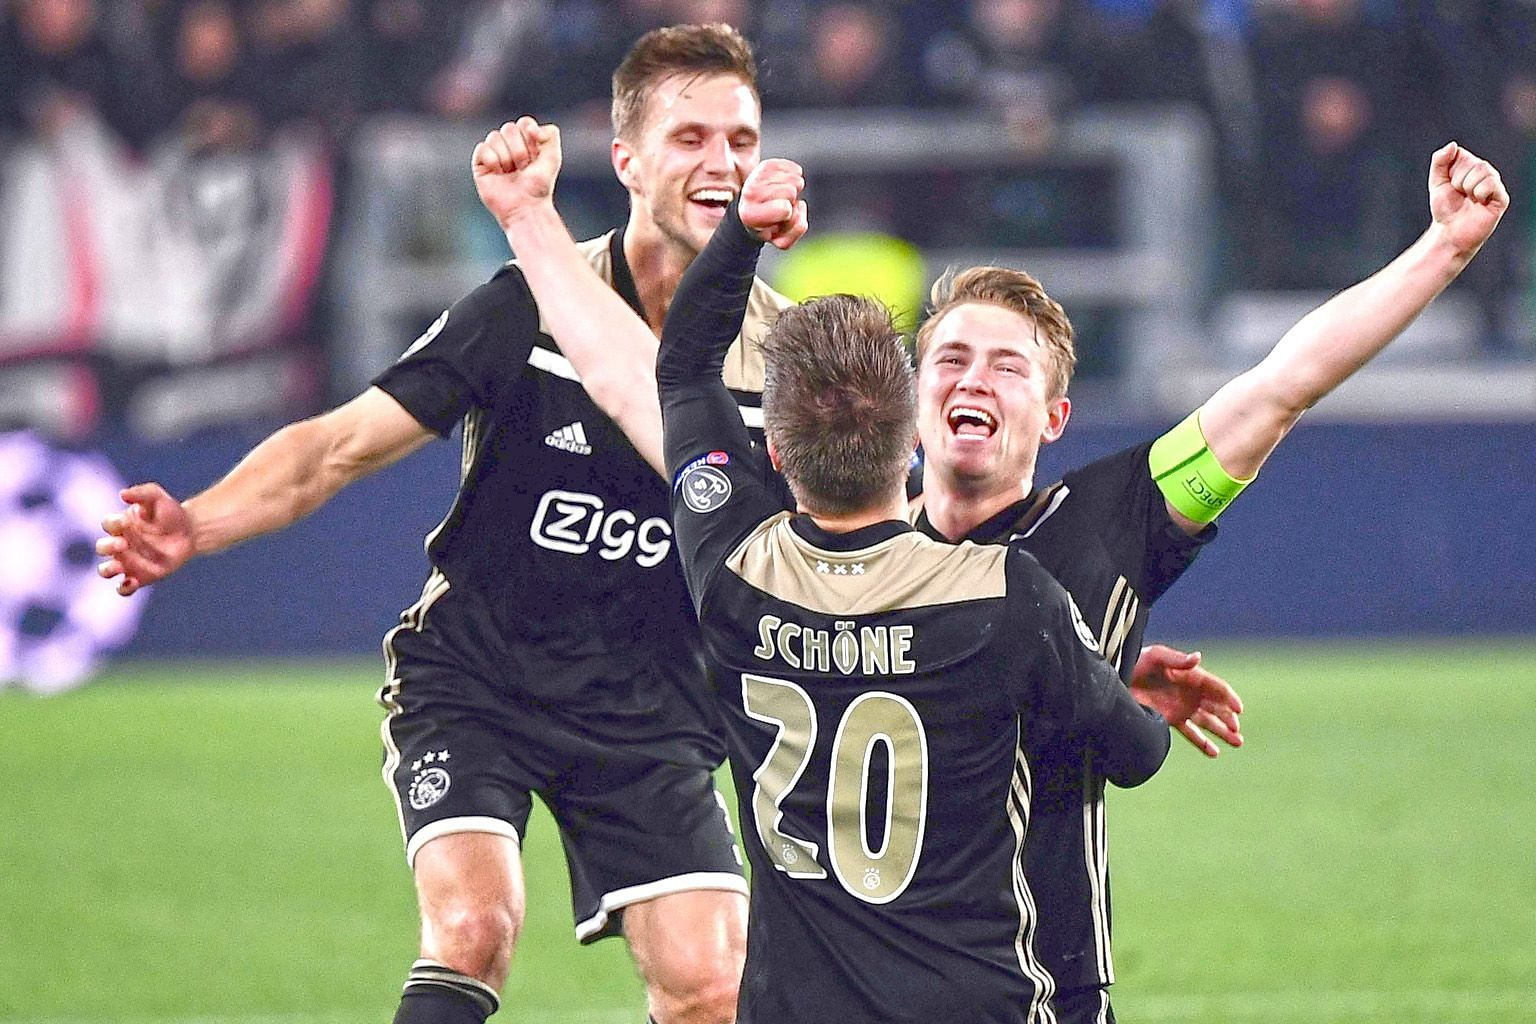 From left: Ajax defender Joel Veltman, midfielder Lasse Schone and defender Matthijs de Ligt celebrating after defeating Juventus 2-1 in the second leg of the Champions League quarter-final in Turin on Tuesday. The Dutch team won 3-2 on aggregate and